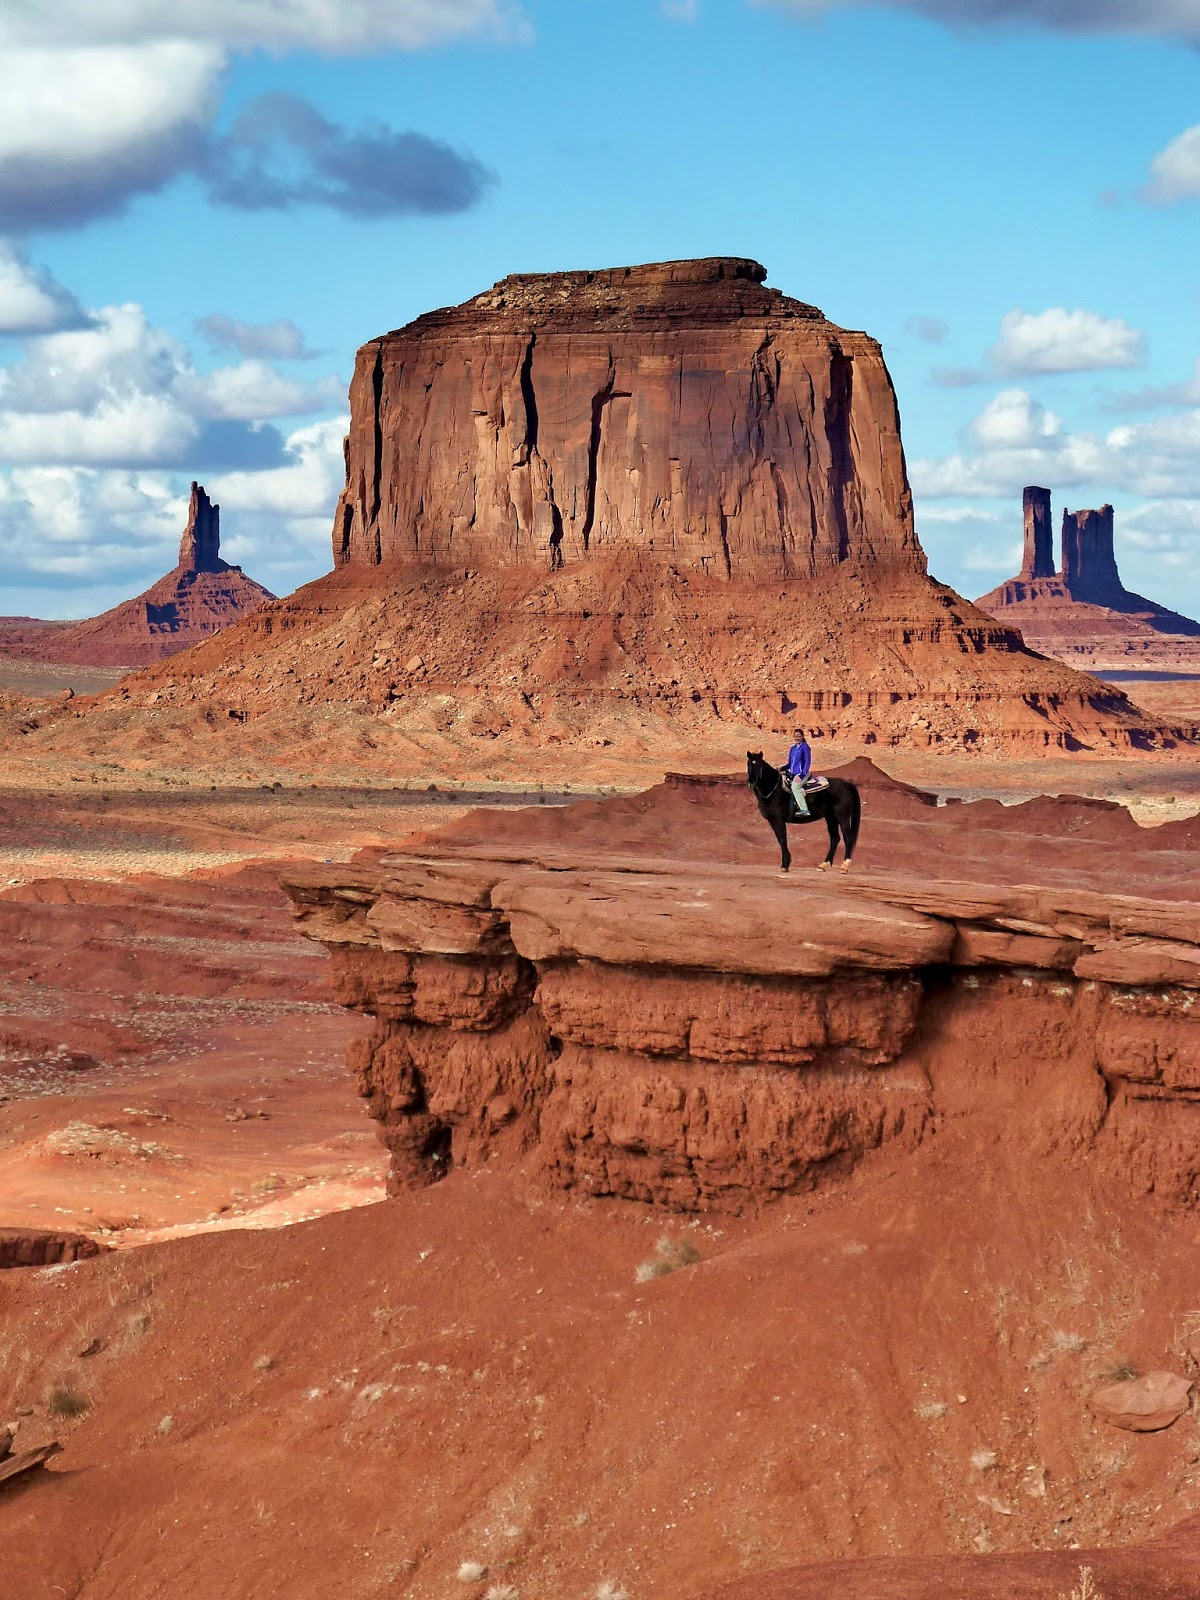 Horseback Riding in Monument Valley. This is me on John Ford's Point. Many know this from John Wayne.